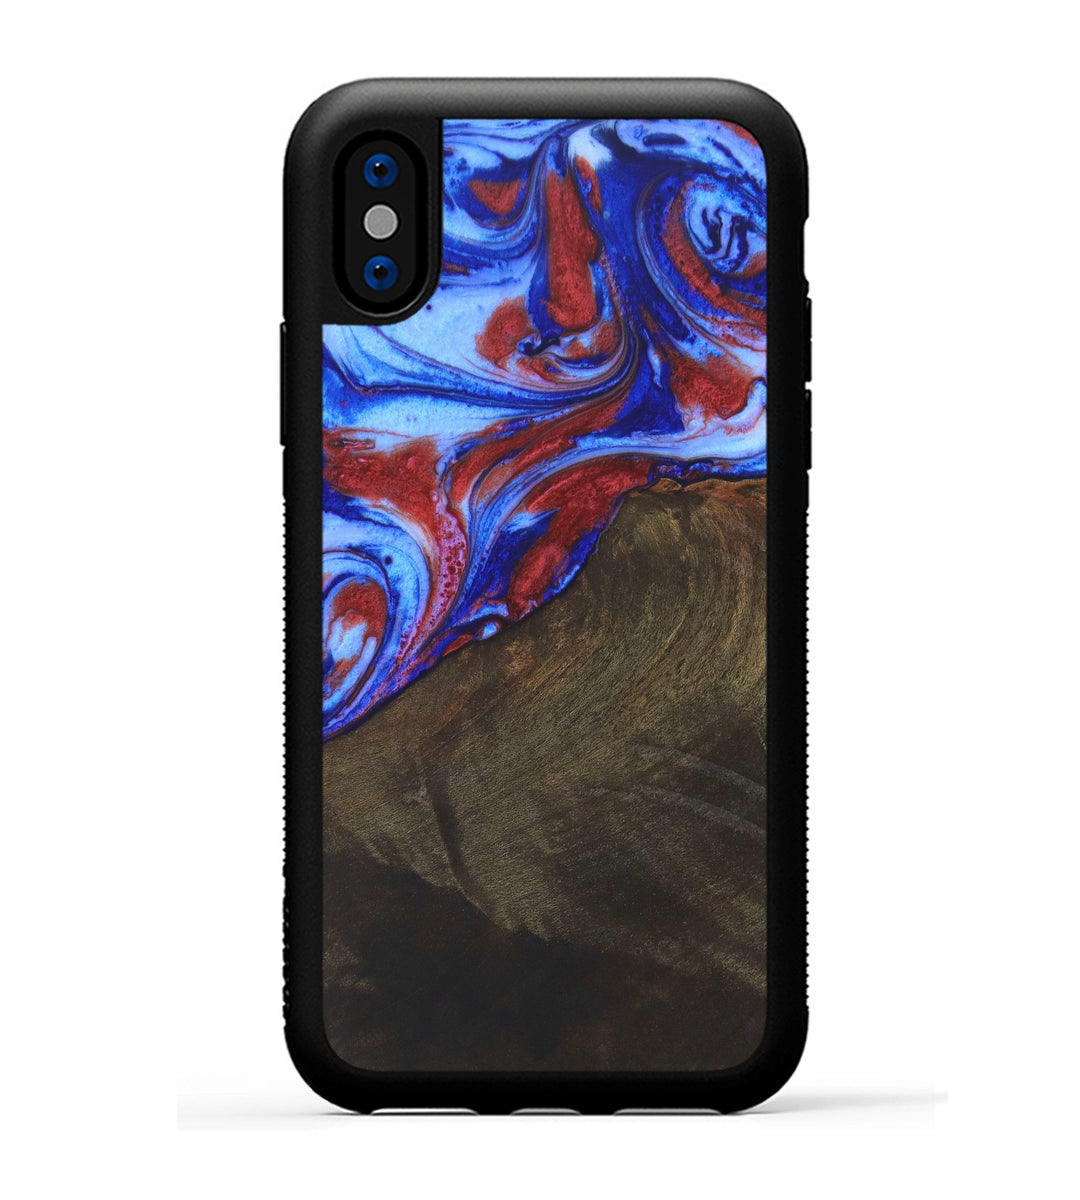 iPhone X Wood+Resin Case - Shuichi (Blue & Red, 332137)